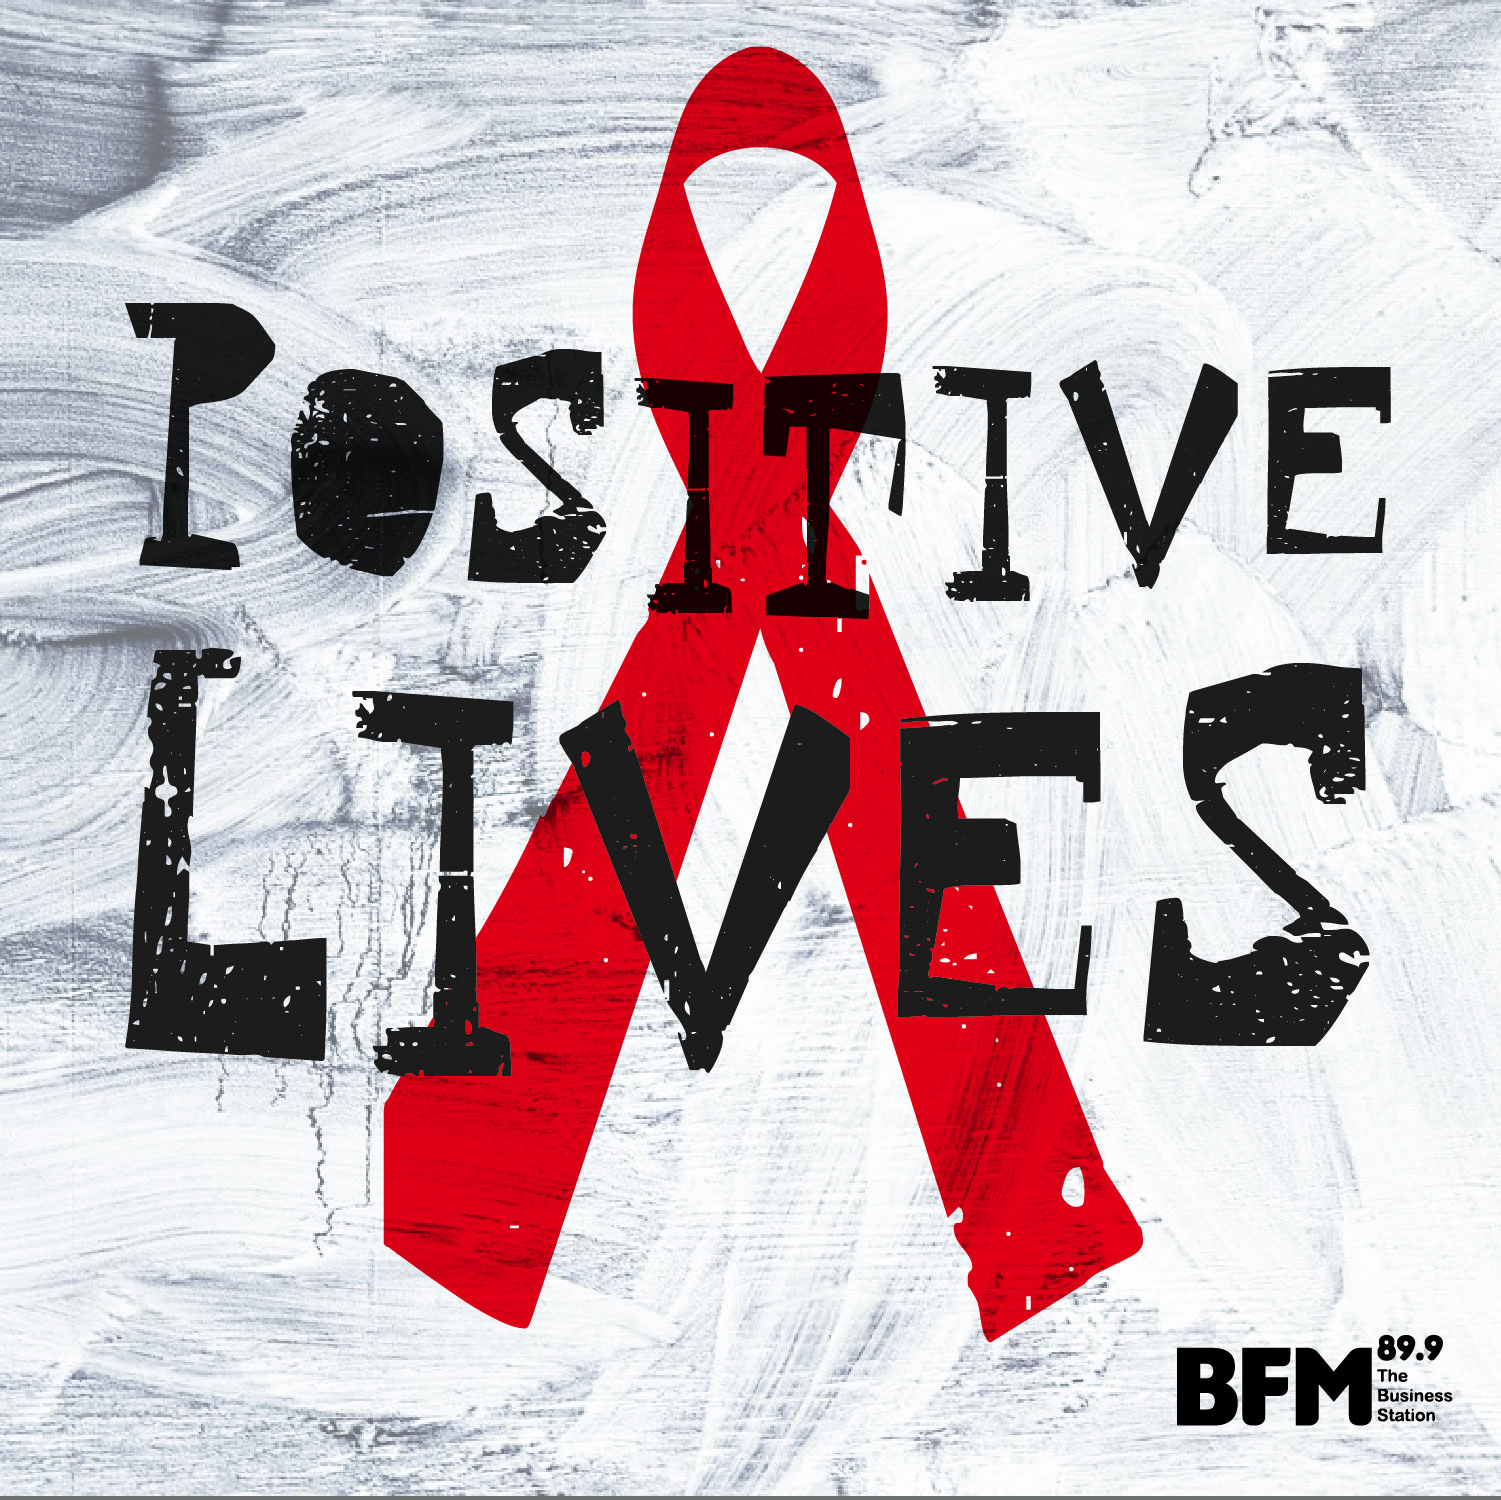 On Positive Lives, we hear the underrepresented narratives of battling HIV/AIDS in Malaysia. From an activist confronting stigma, to the doctor challenging cultural norms to improve treatment, these stories of hope and tenacity showcase what it means to face a condition once thought to be unbeatable